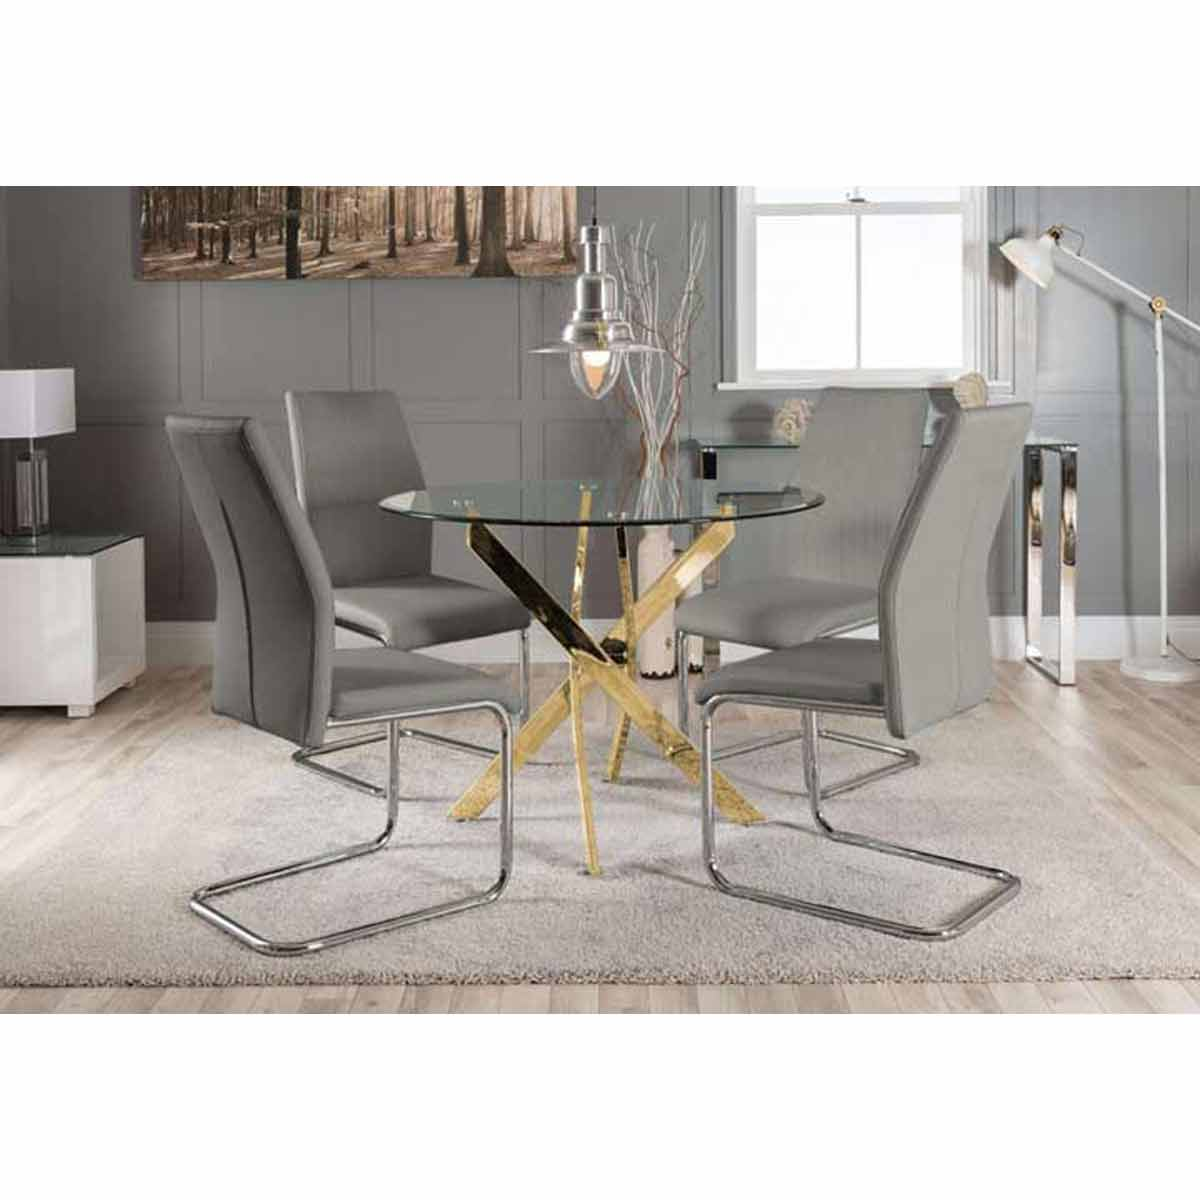 Furniture Box Novara Gold Metal Round Glass Dining Table And 4 Elephant Grey Lorenzo Dining Chairs